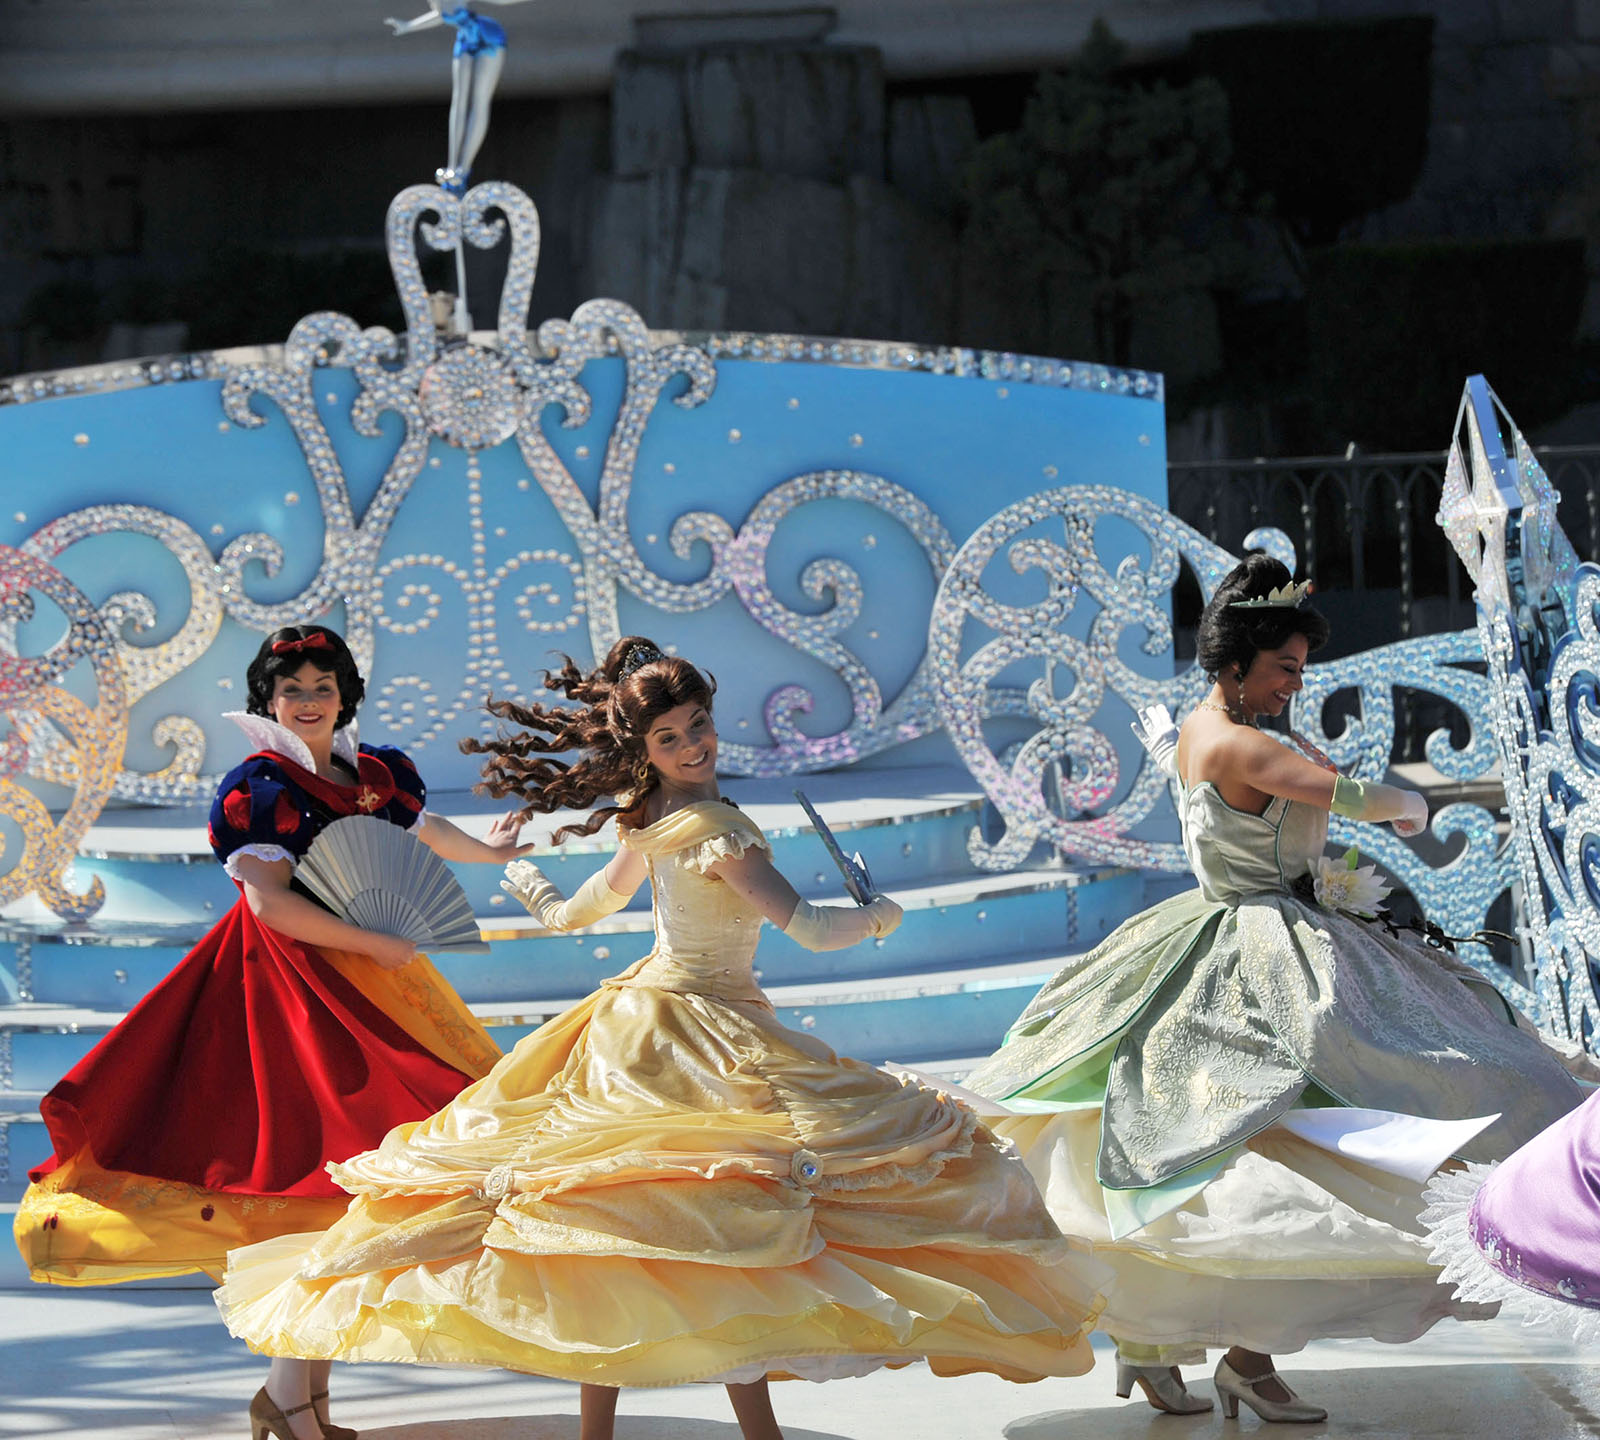 Starlit Princess Waltz - Disneyland Paris